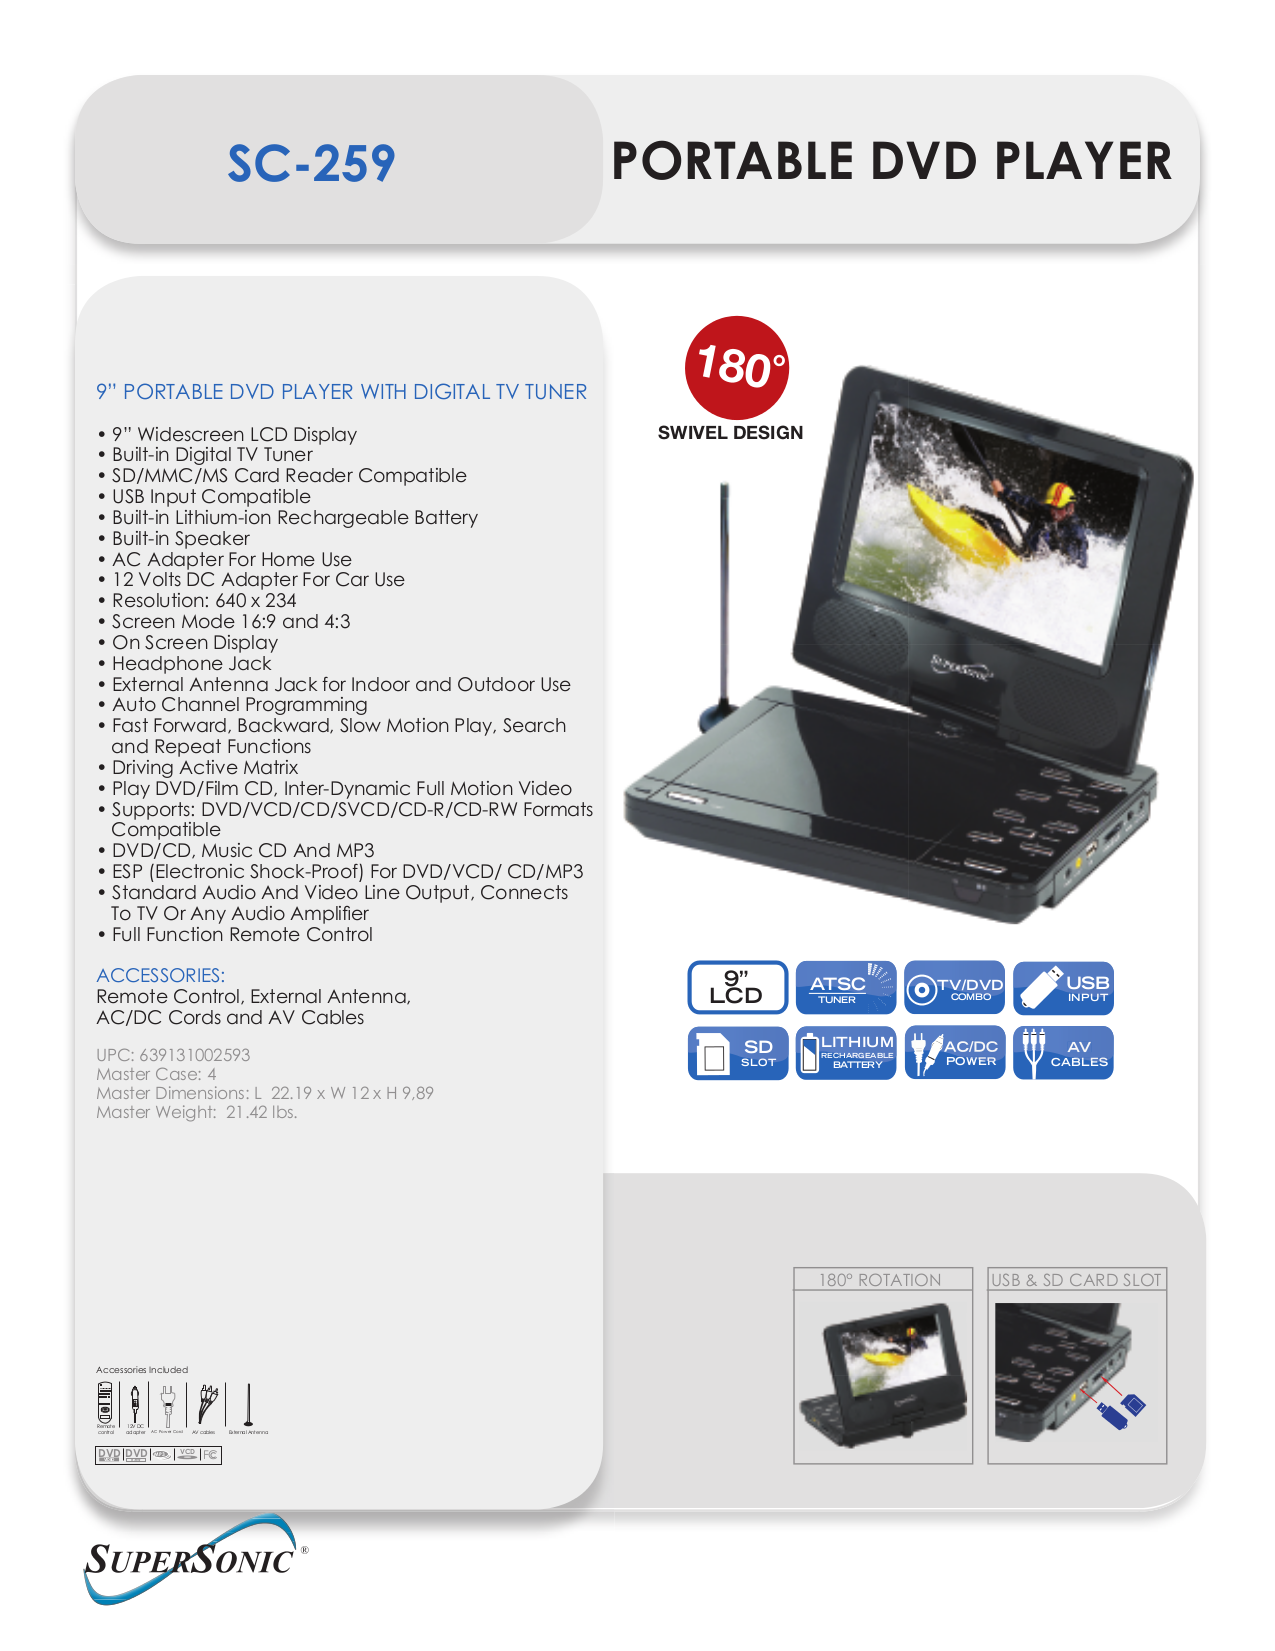 pdf for Supersonic Portable DVD Player SC-259 manual